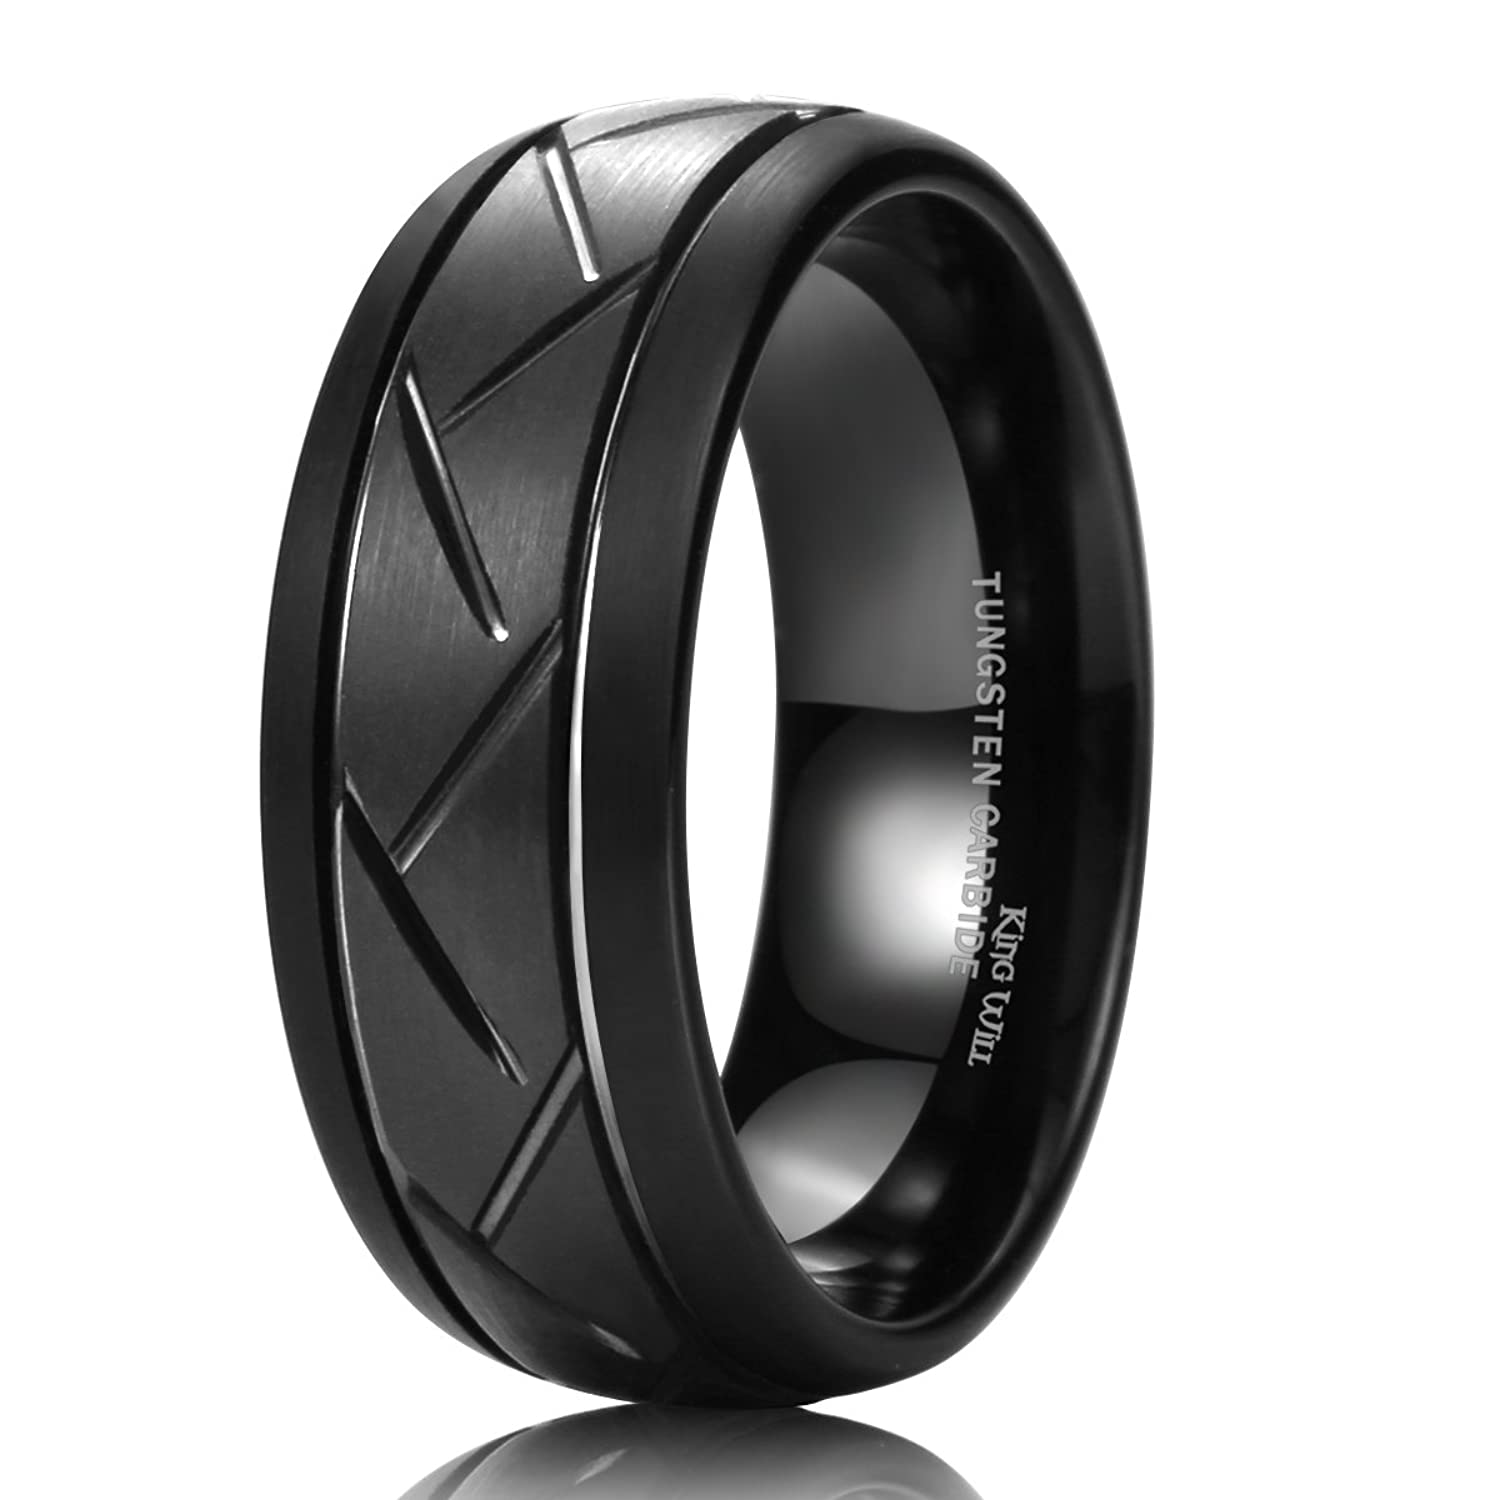 geek by wedding bracelets intricately inspired this vikings on nerdy worn horns custommade com cuff engraved wrapped look black geeky the rings viking is engagement band to bands onyx around like designed